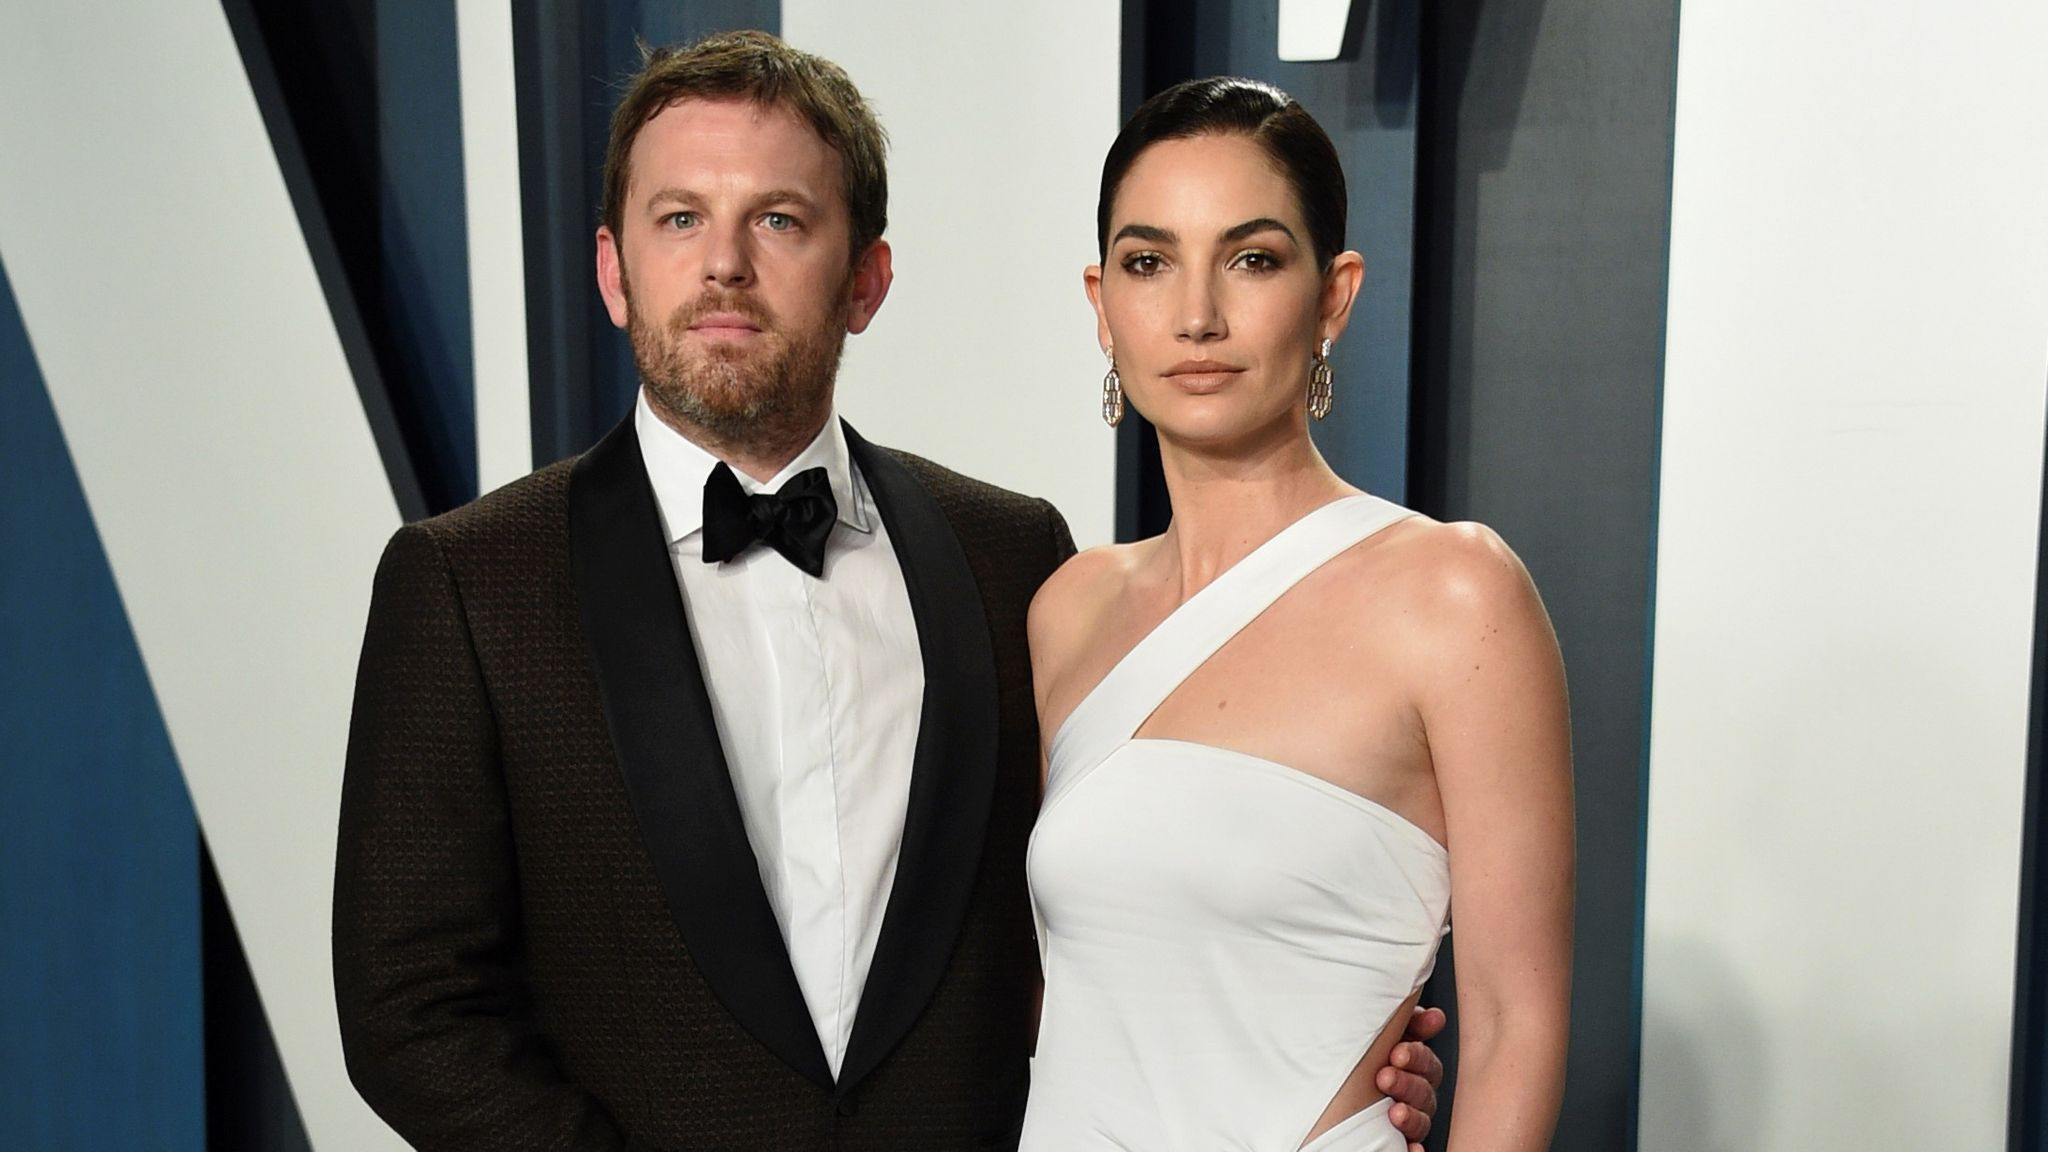 Caleb Followill, left, and Lily Aldridge arrive at the Vanity Fair Oscar Party in February 2020. Pic: AP